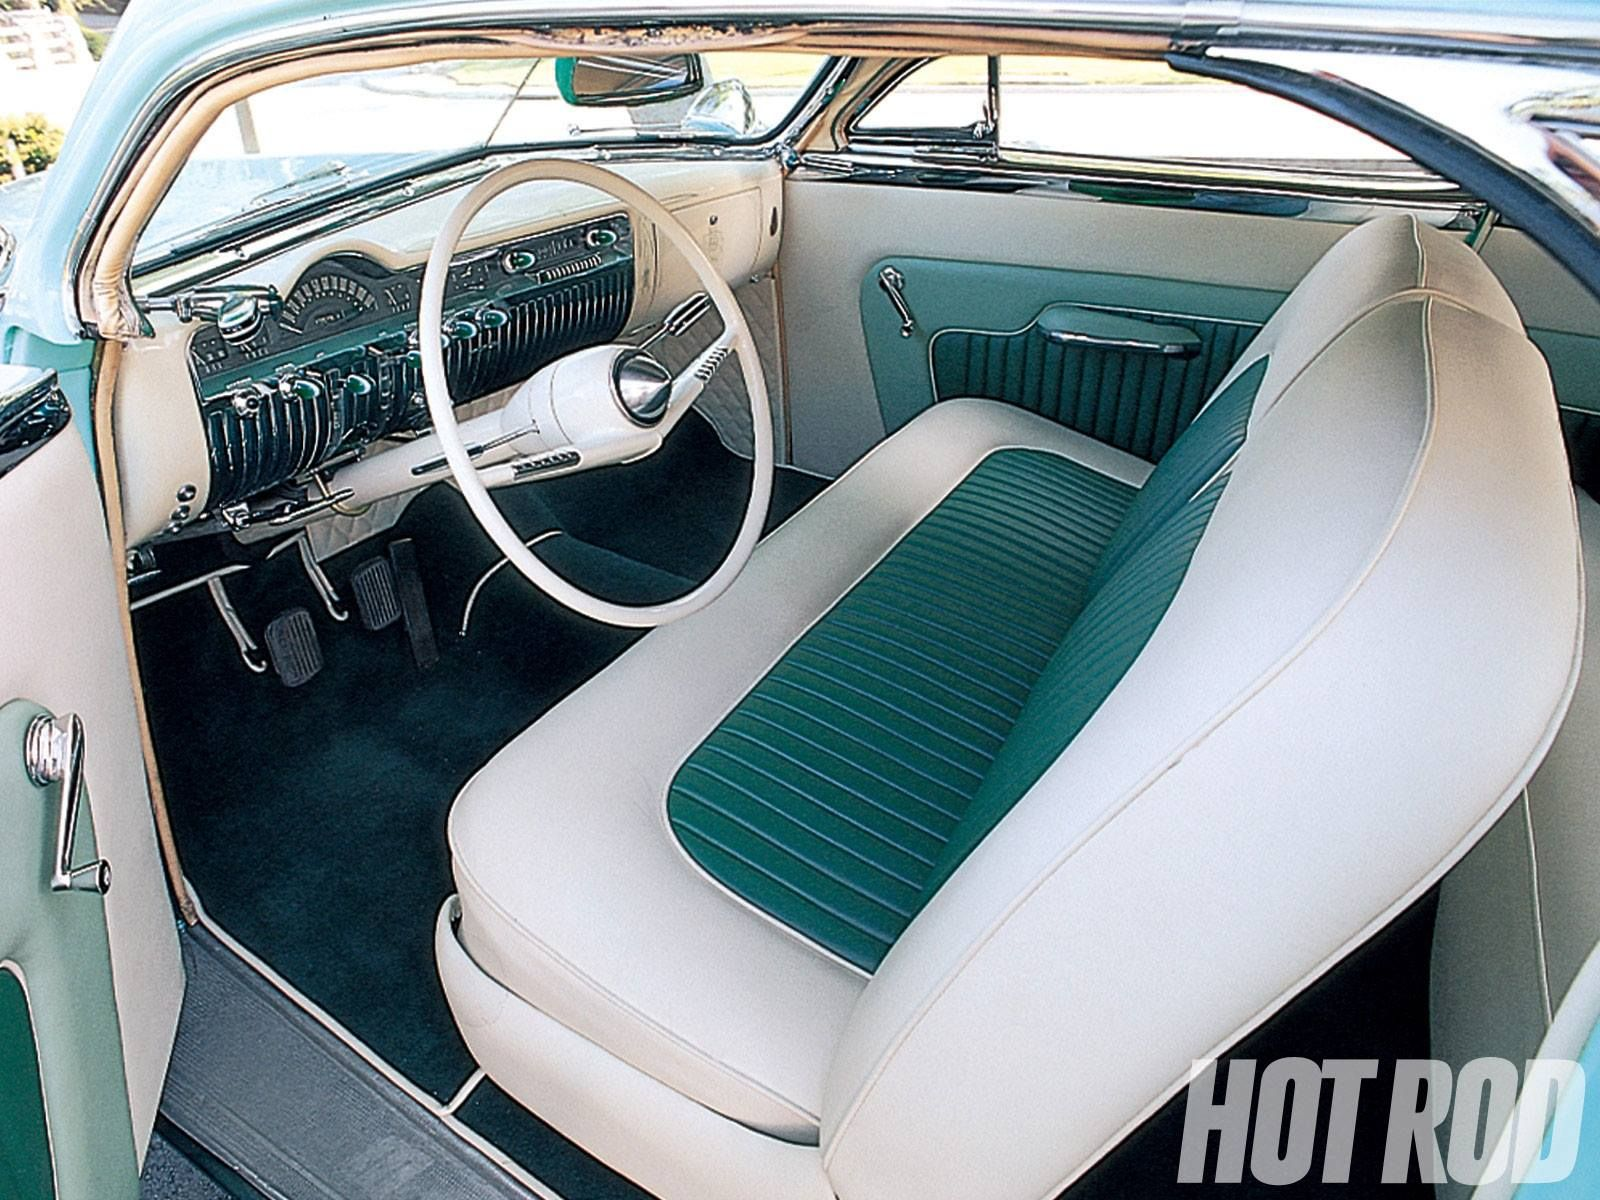 Custom car interior queens ny - Beautiful Classic Tuck And Roll Interior In Two Tone Winter Green And White Looks Like